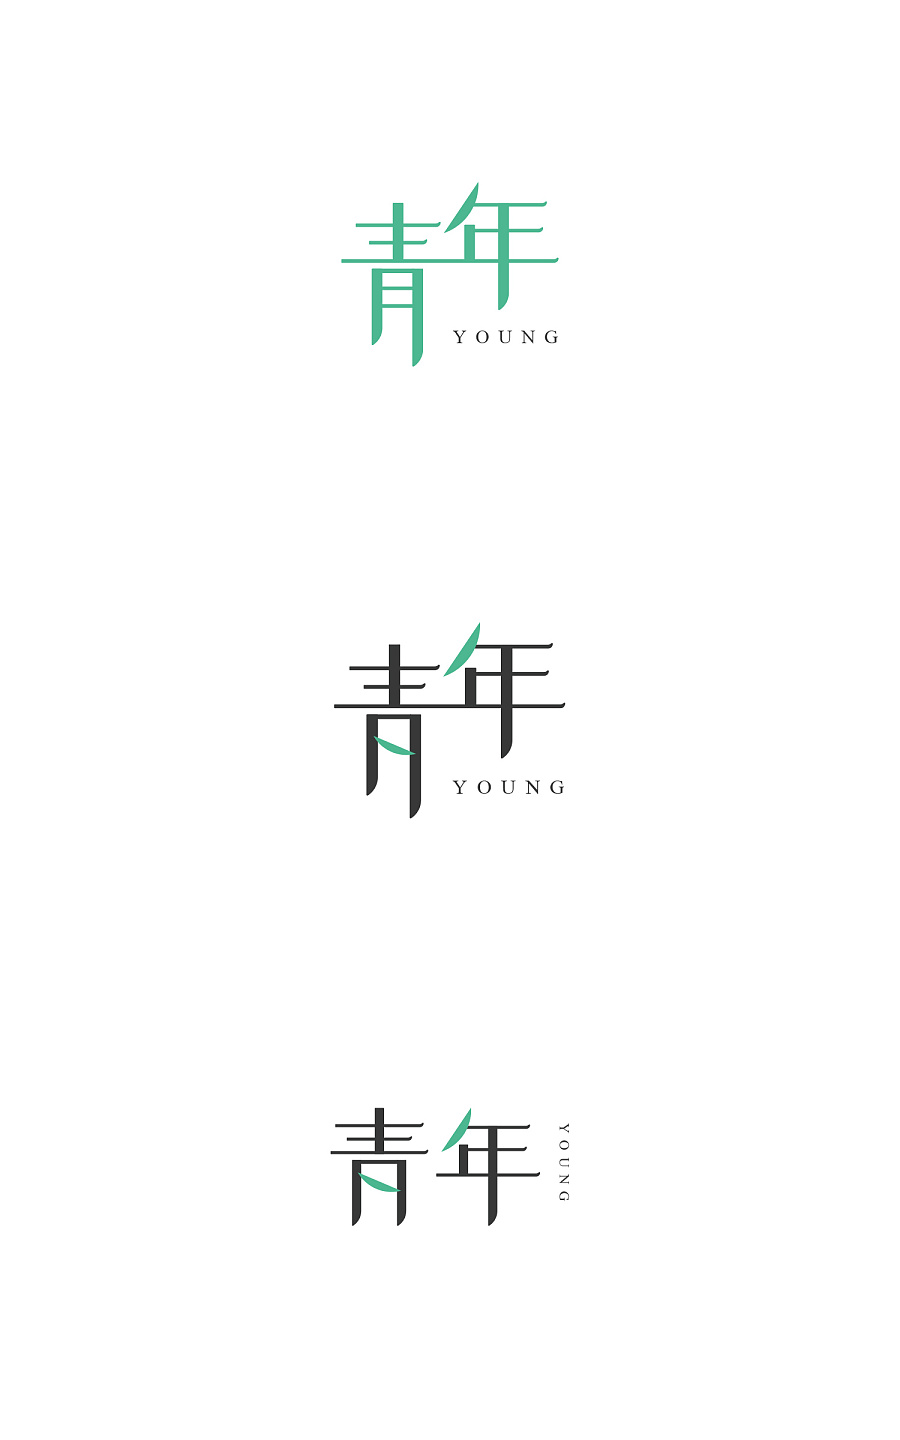 chinesefontdesign.com 2017 02 06 19 55 19 144P+ Wonderful idea of the Chinese font logo design #.121